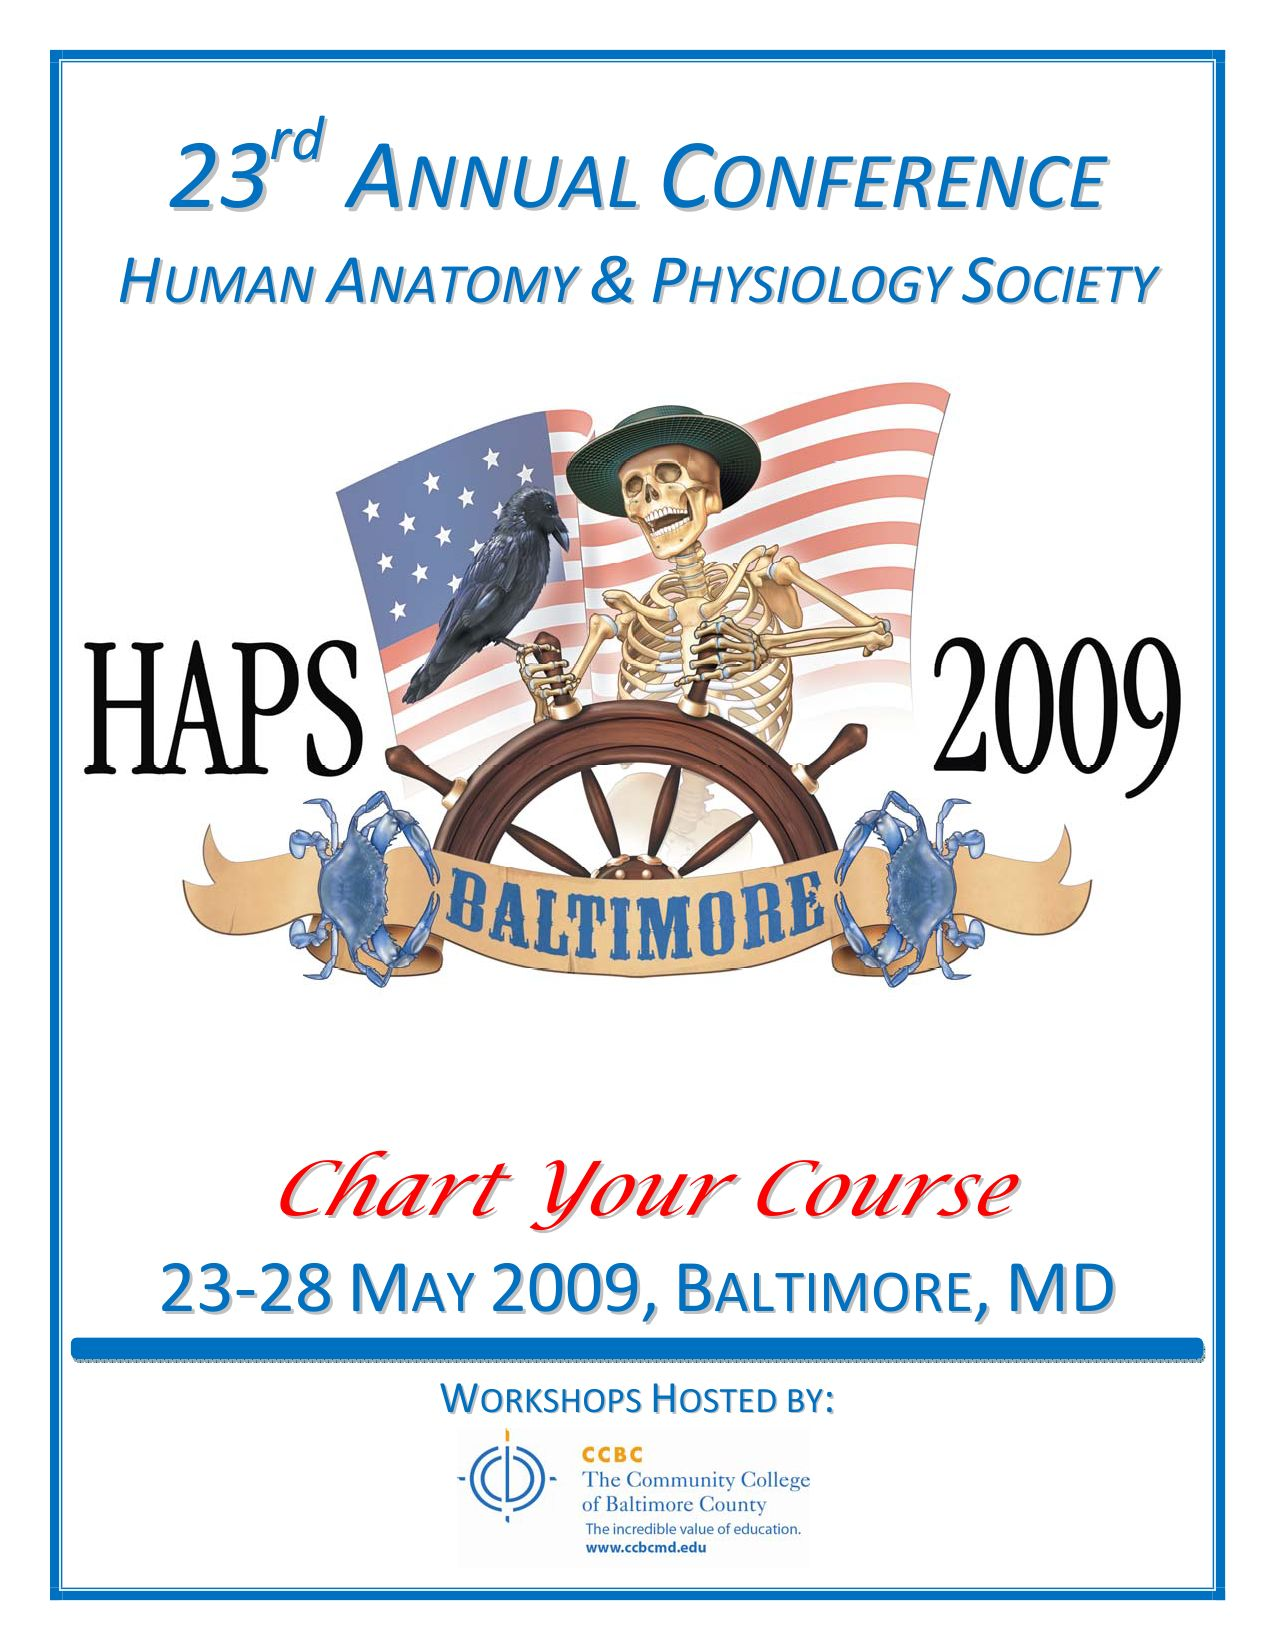 HAPS 23rd Annual Conference Program By Robin Hurst Issuu